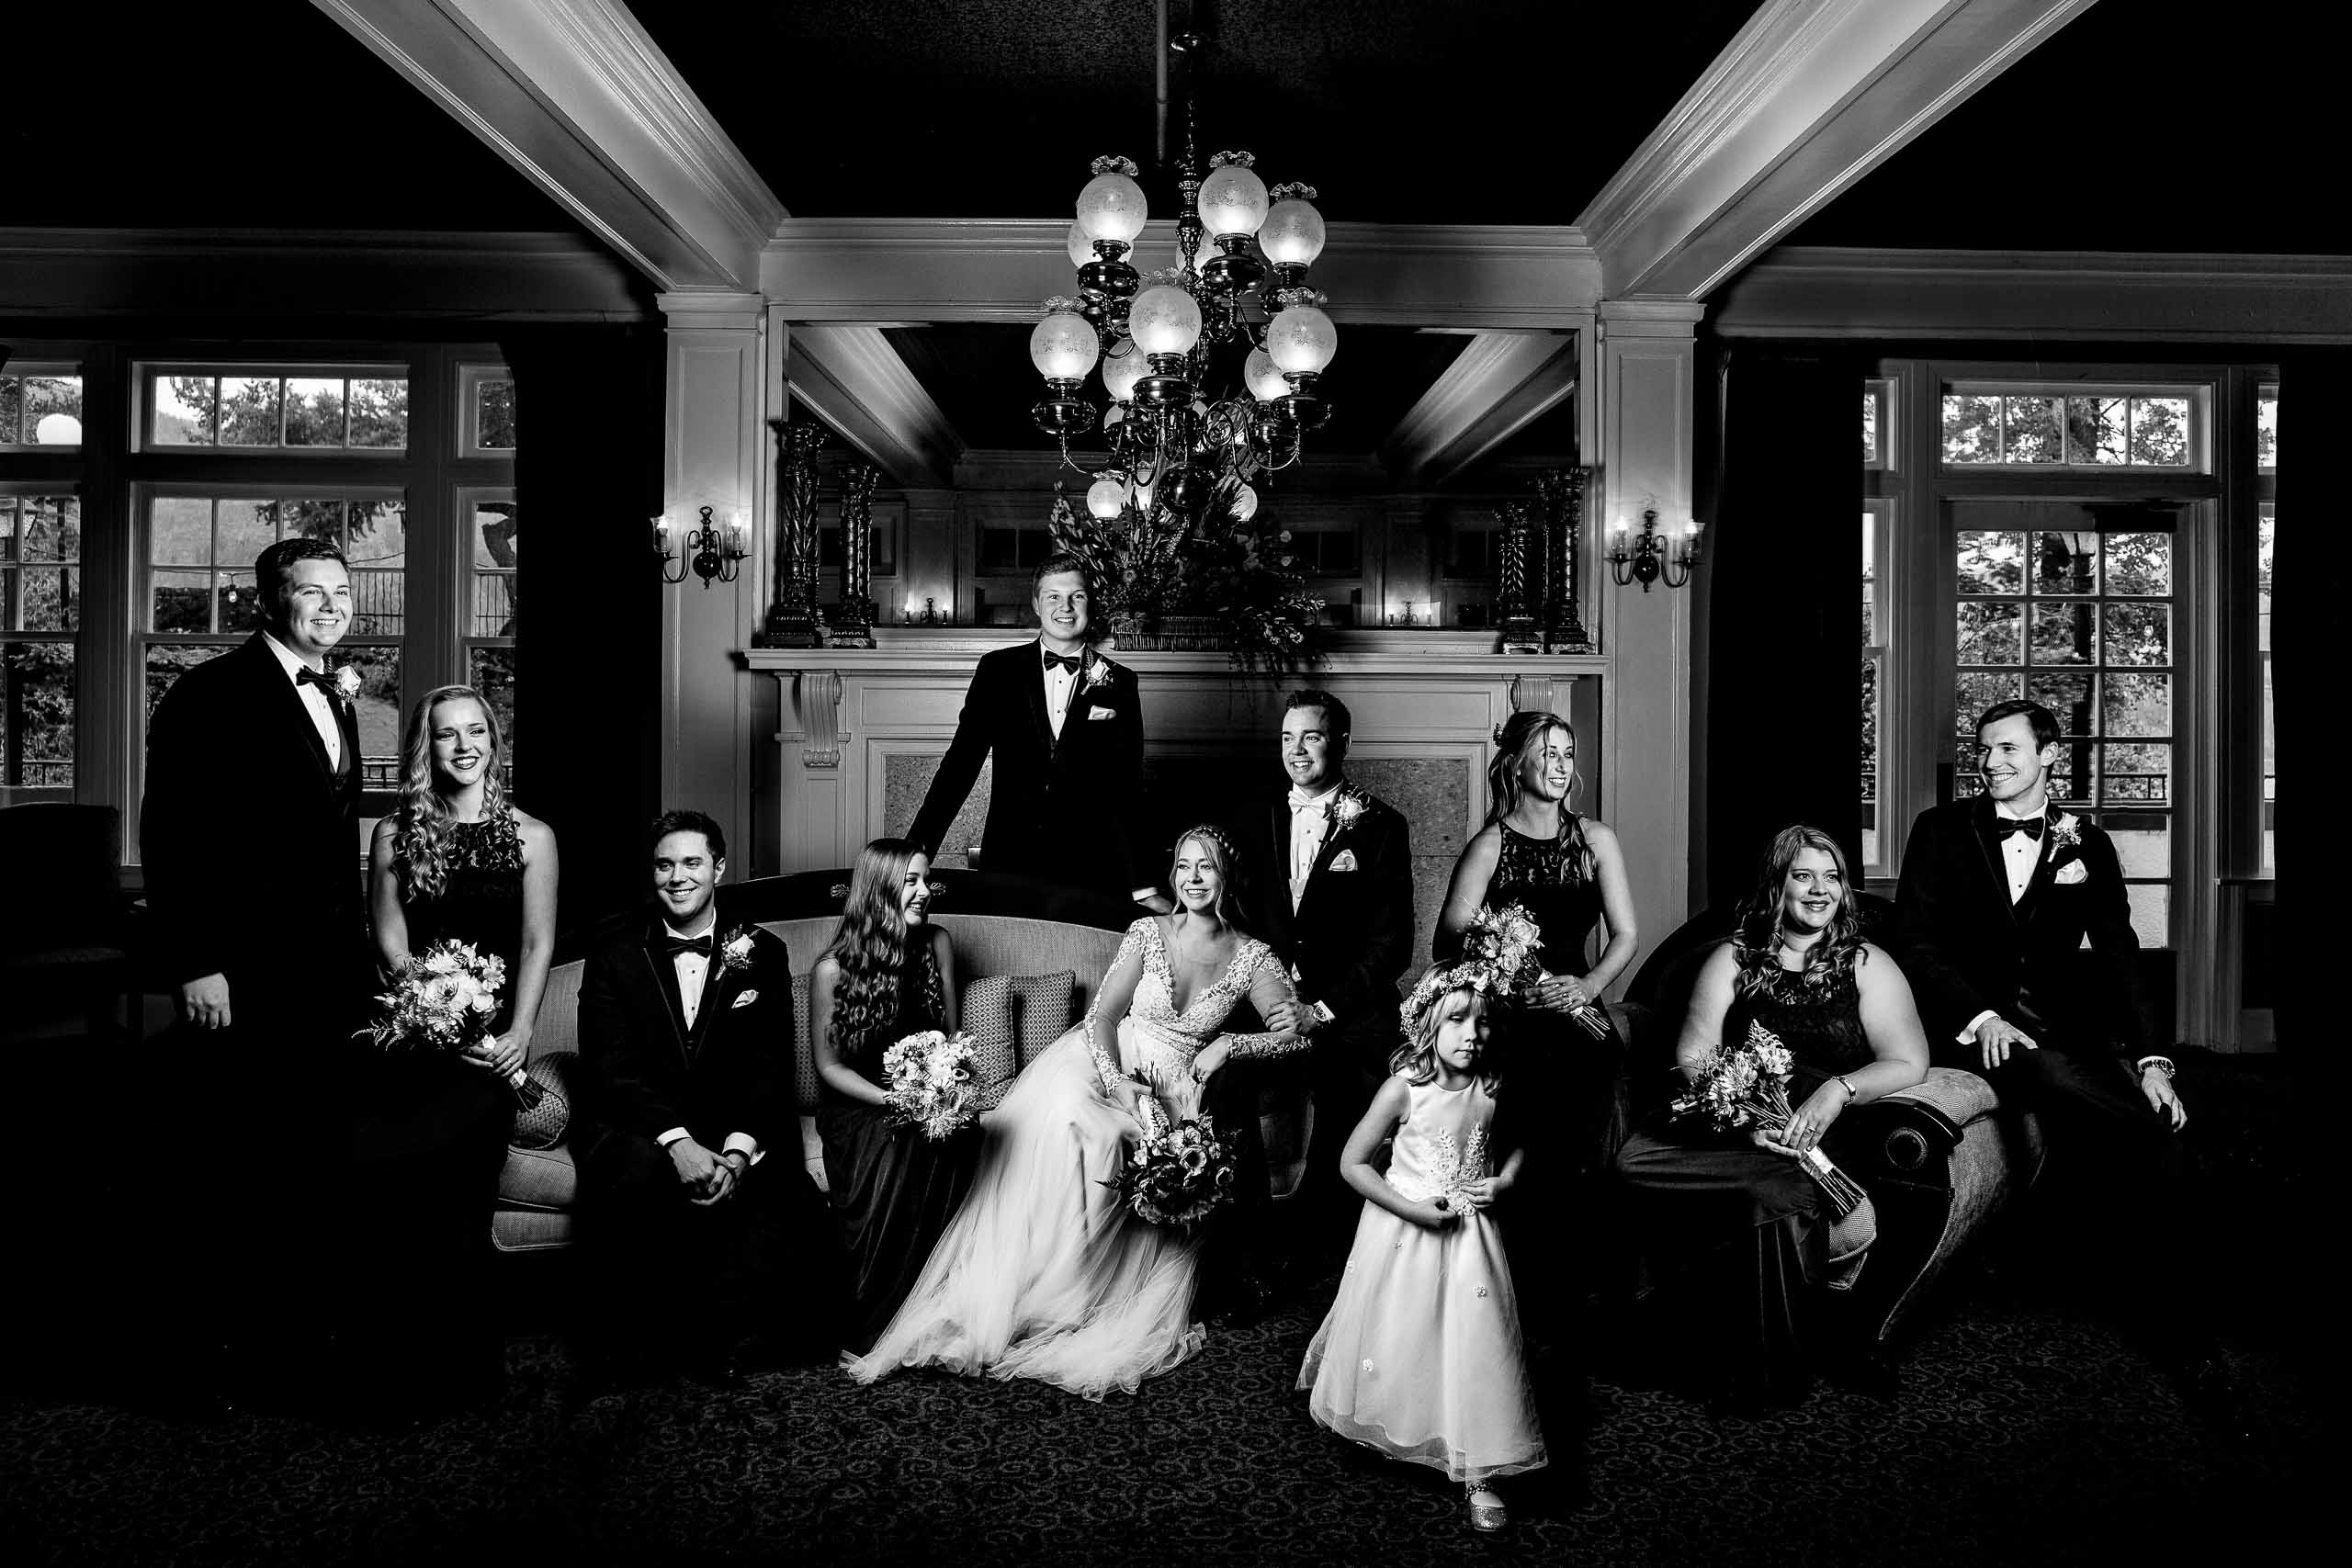 Bridal party photo at the Columbia Gorge Hotel near Hood River Oregon